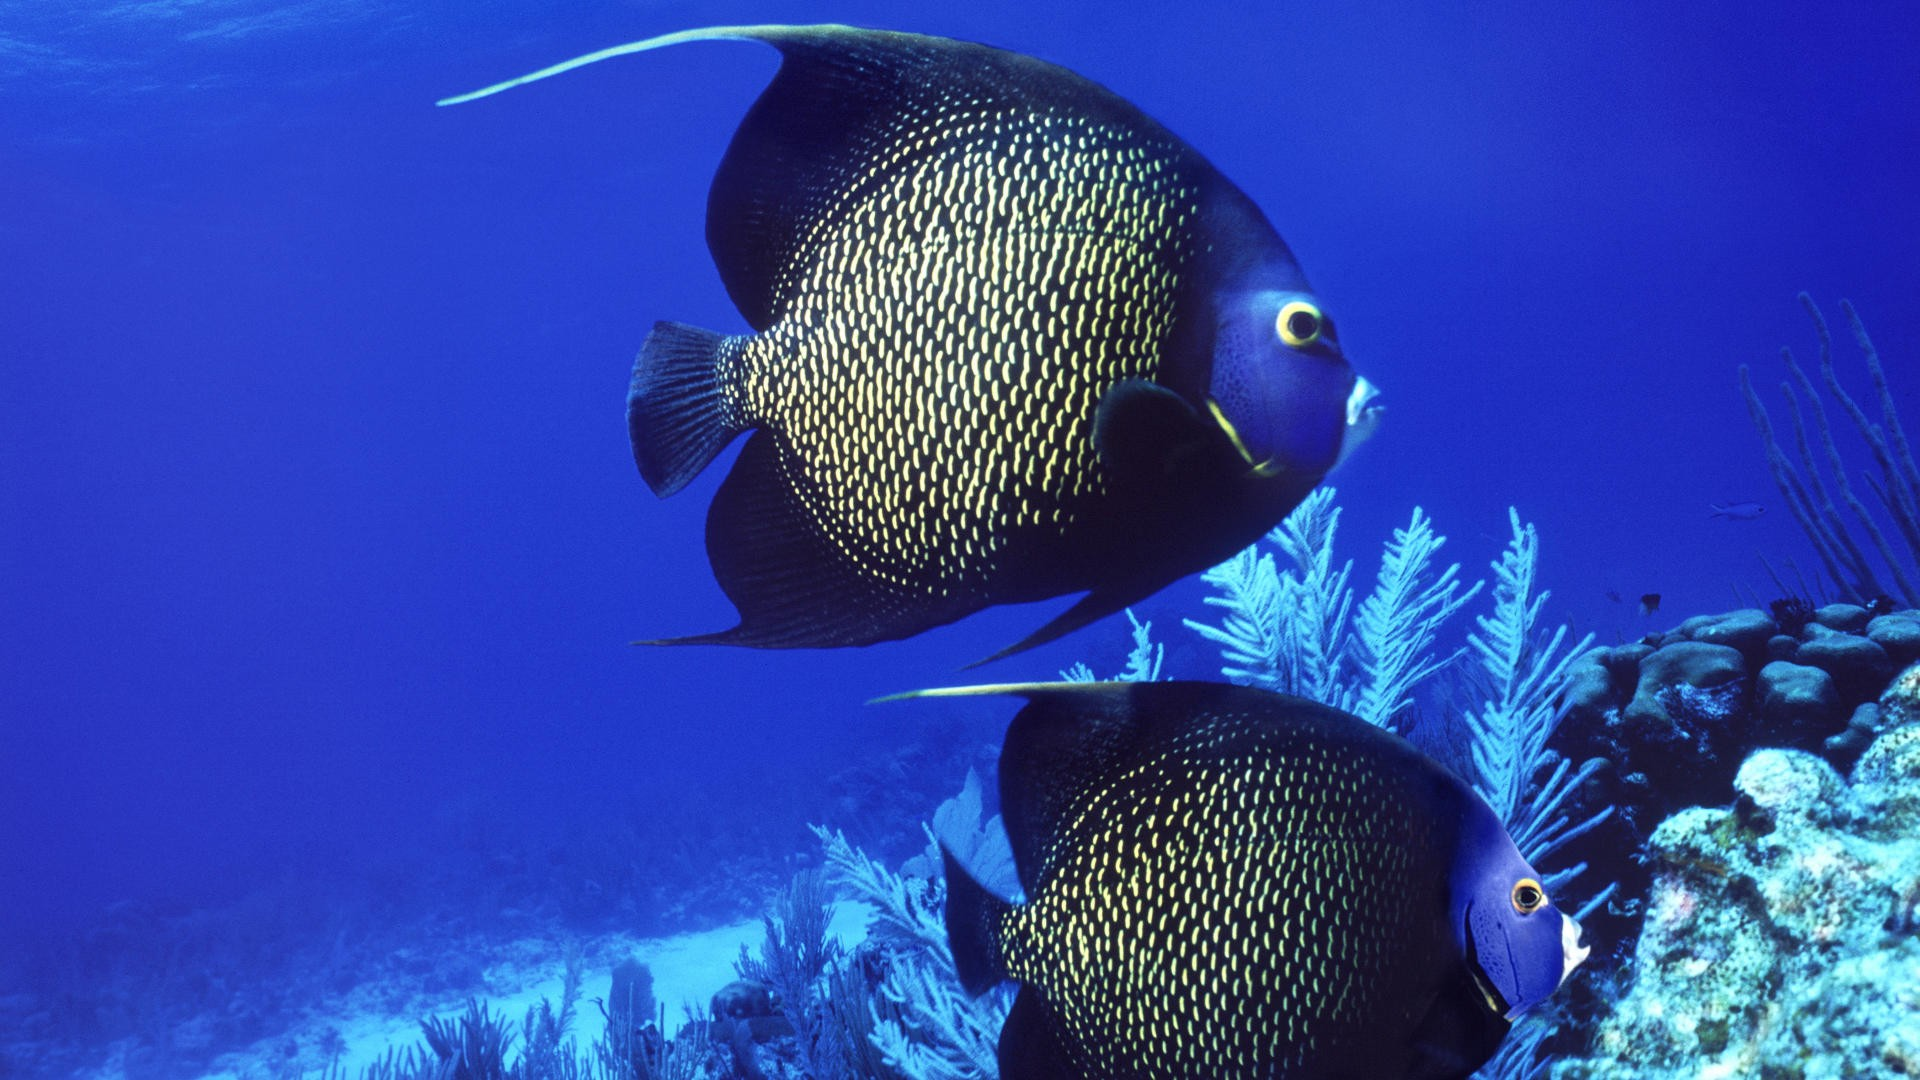 Give 1920×1080 Fish Wallpaper a Thumb for a Healthy Swim